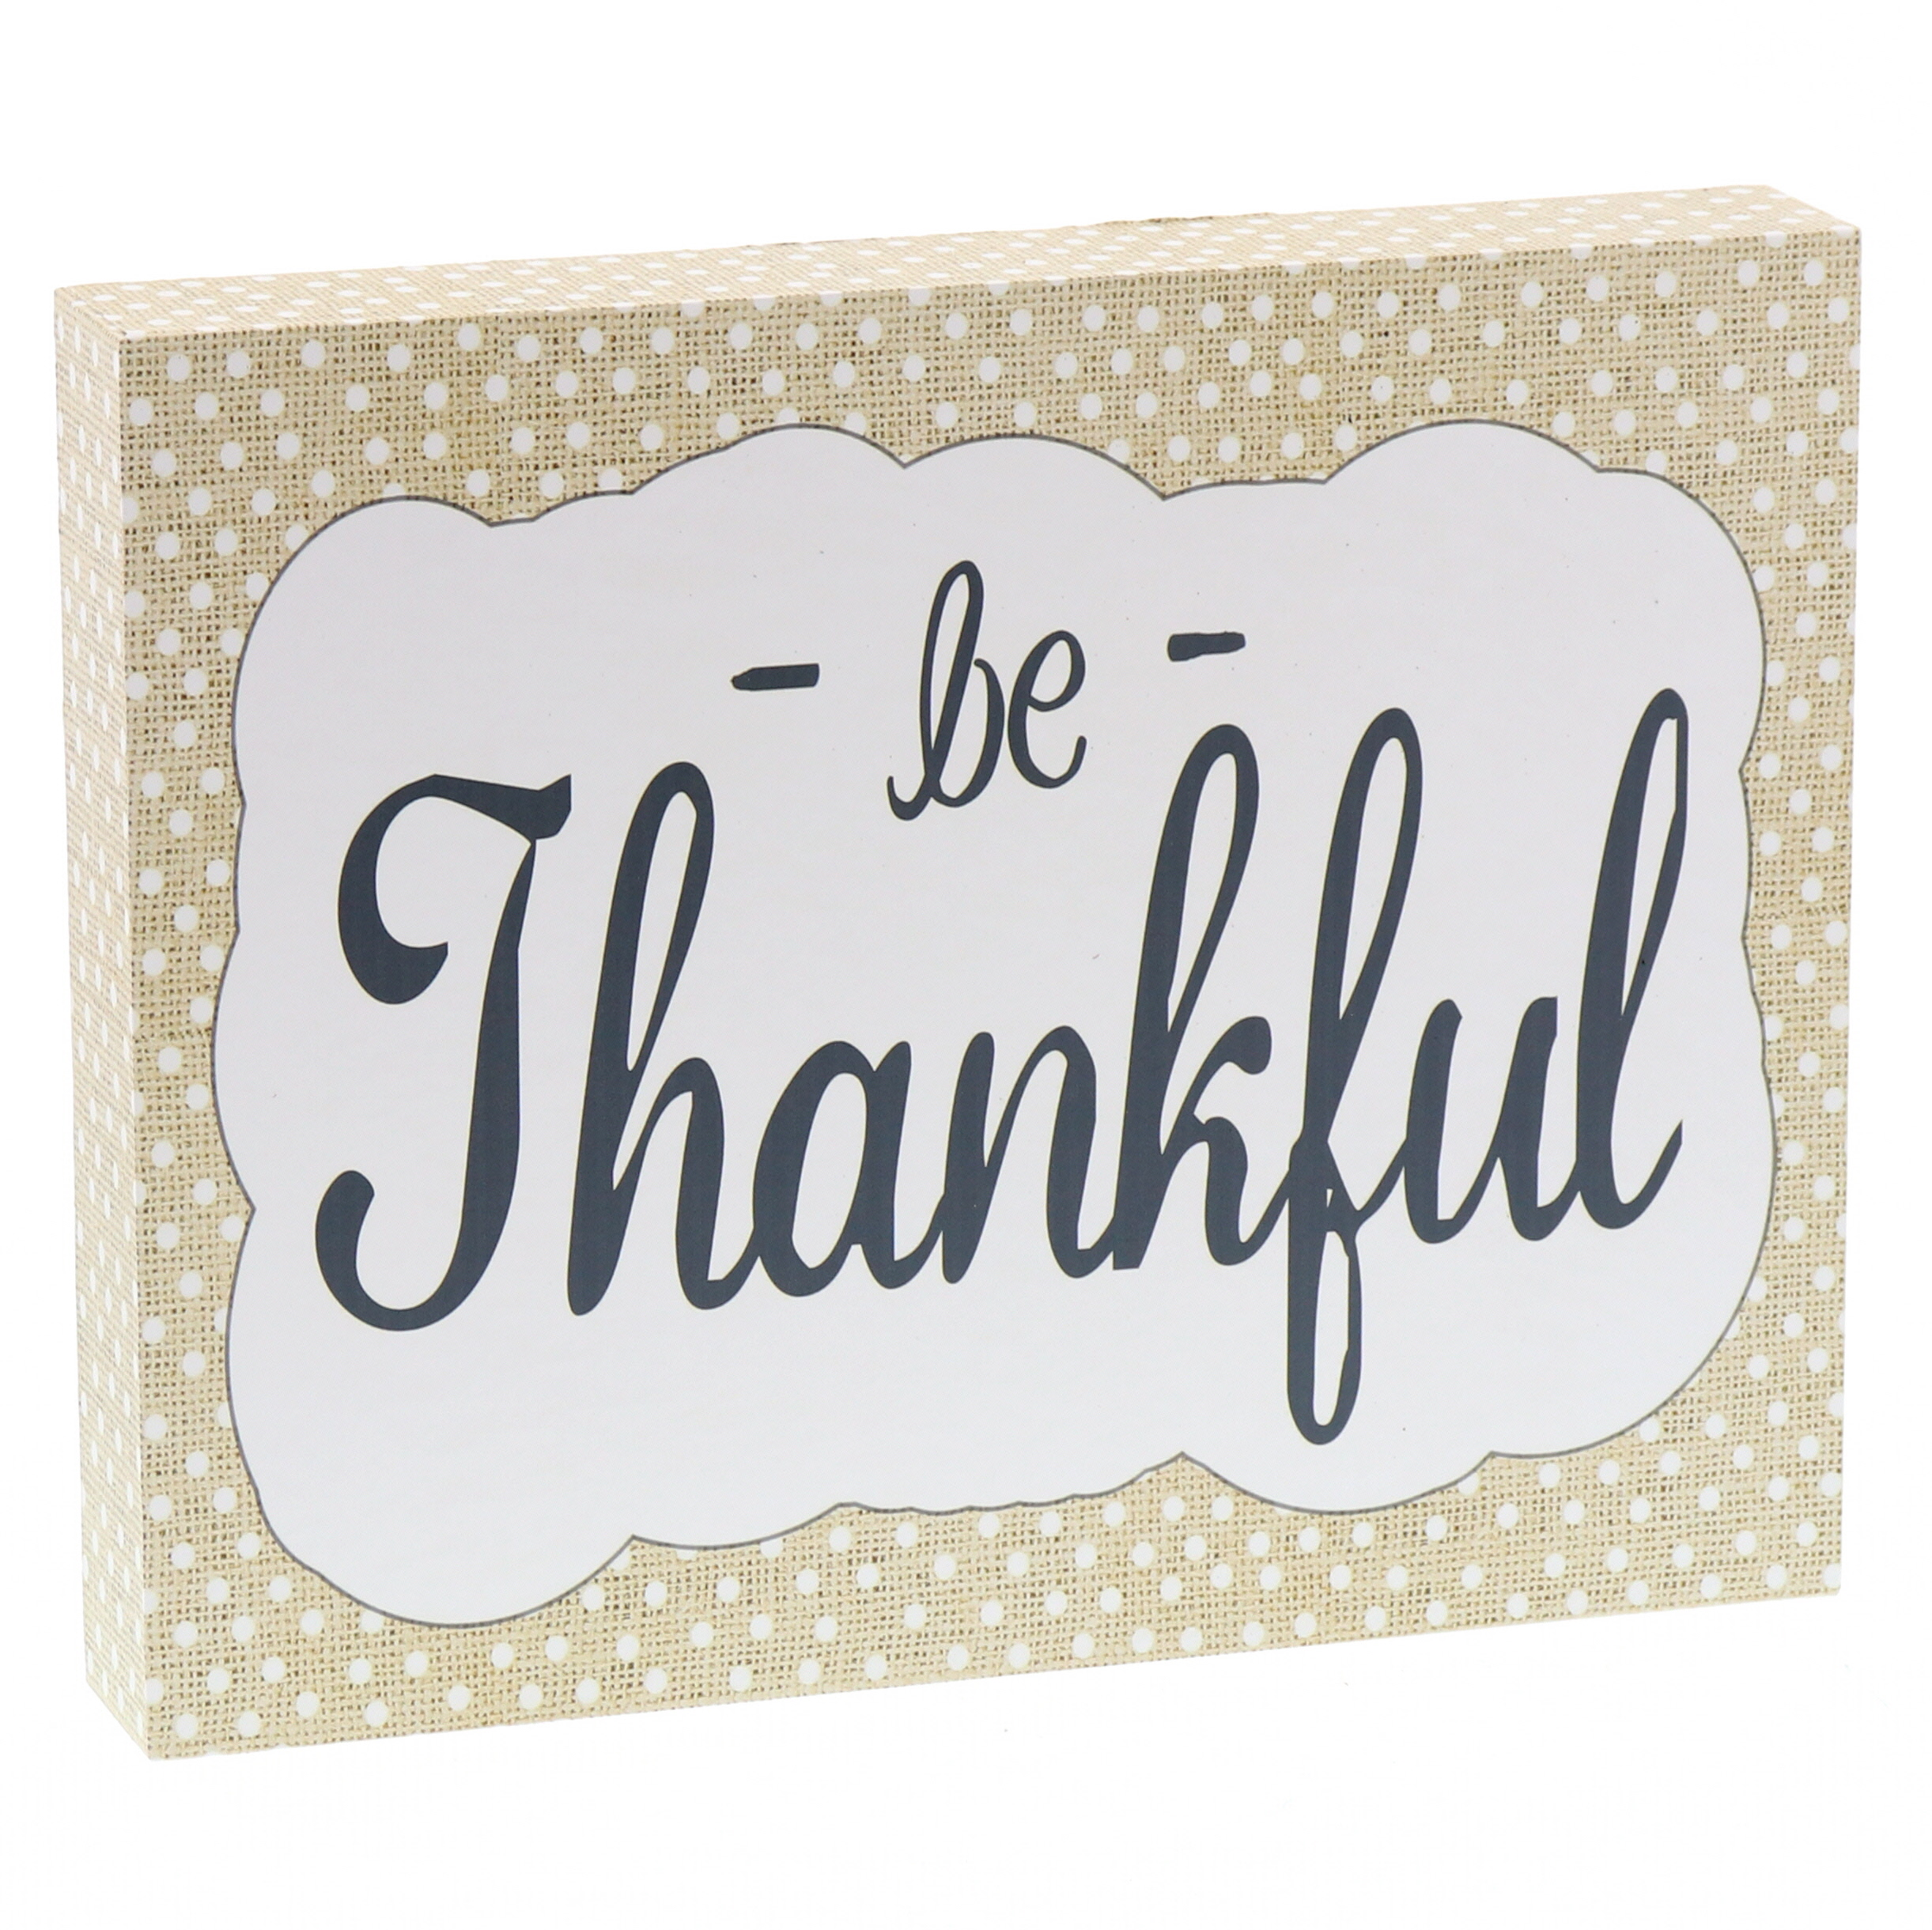 Barnyard Designs Be Thankful Wooden Box Wall Art Sign Primitive